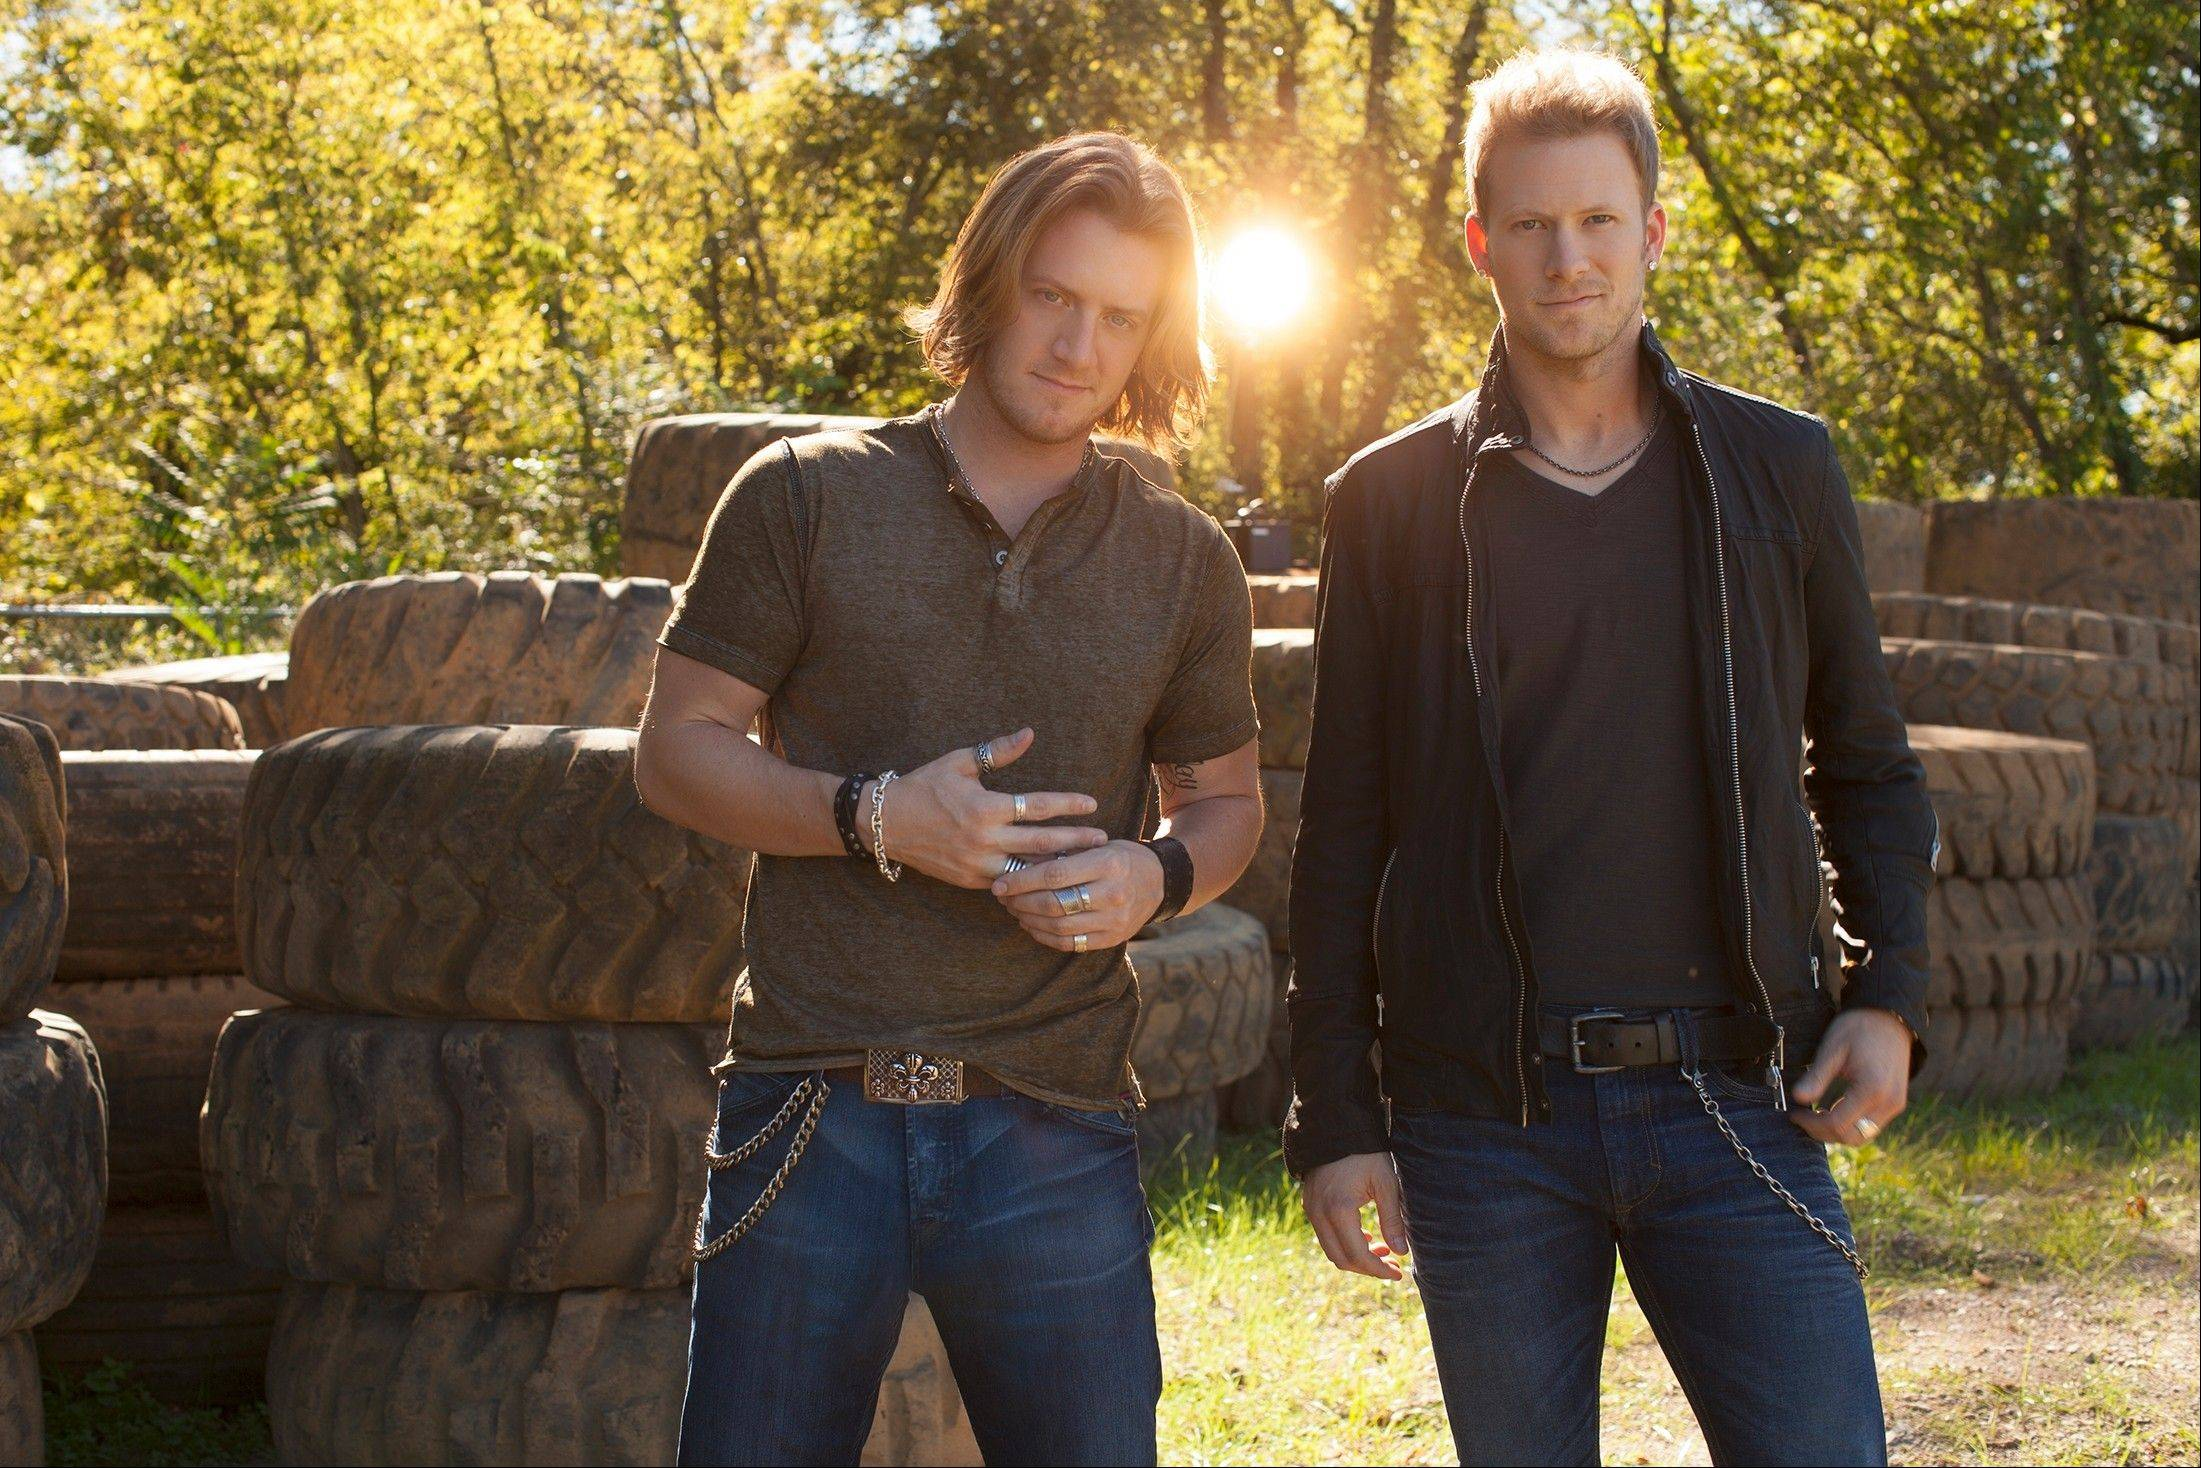 Florida Georgia Line's Tyler Hubbard, left, and Brian Kelley play the Sears Centre Arena in Hoffman Estates Thursday, Oct. 31. The concert sold out in less than five minutes.